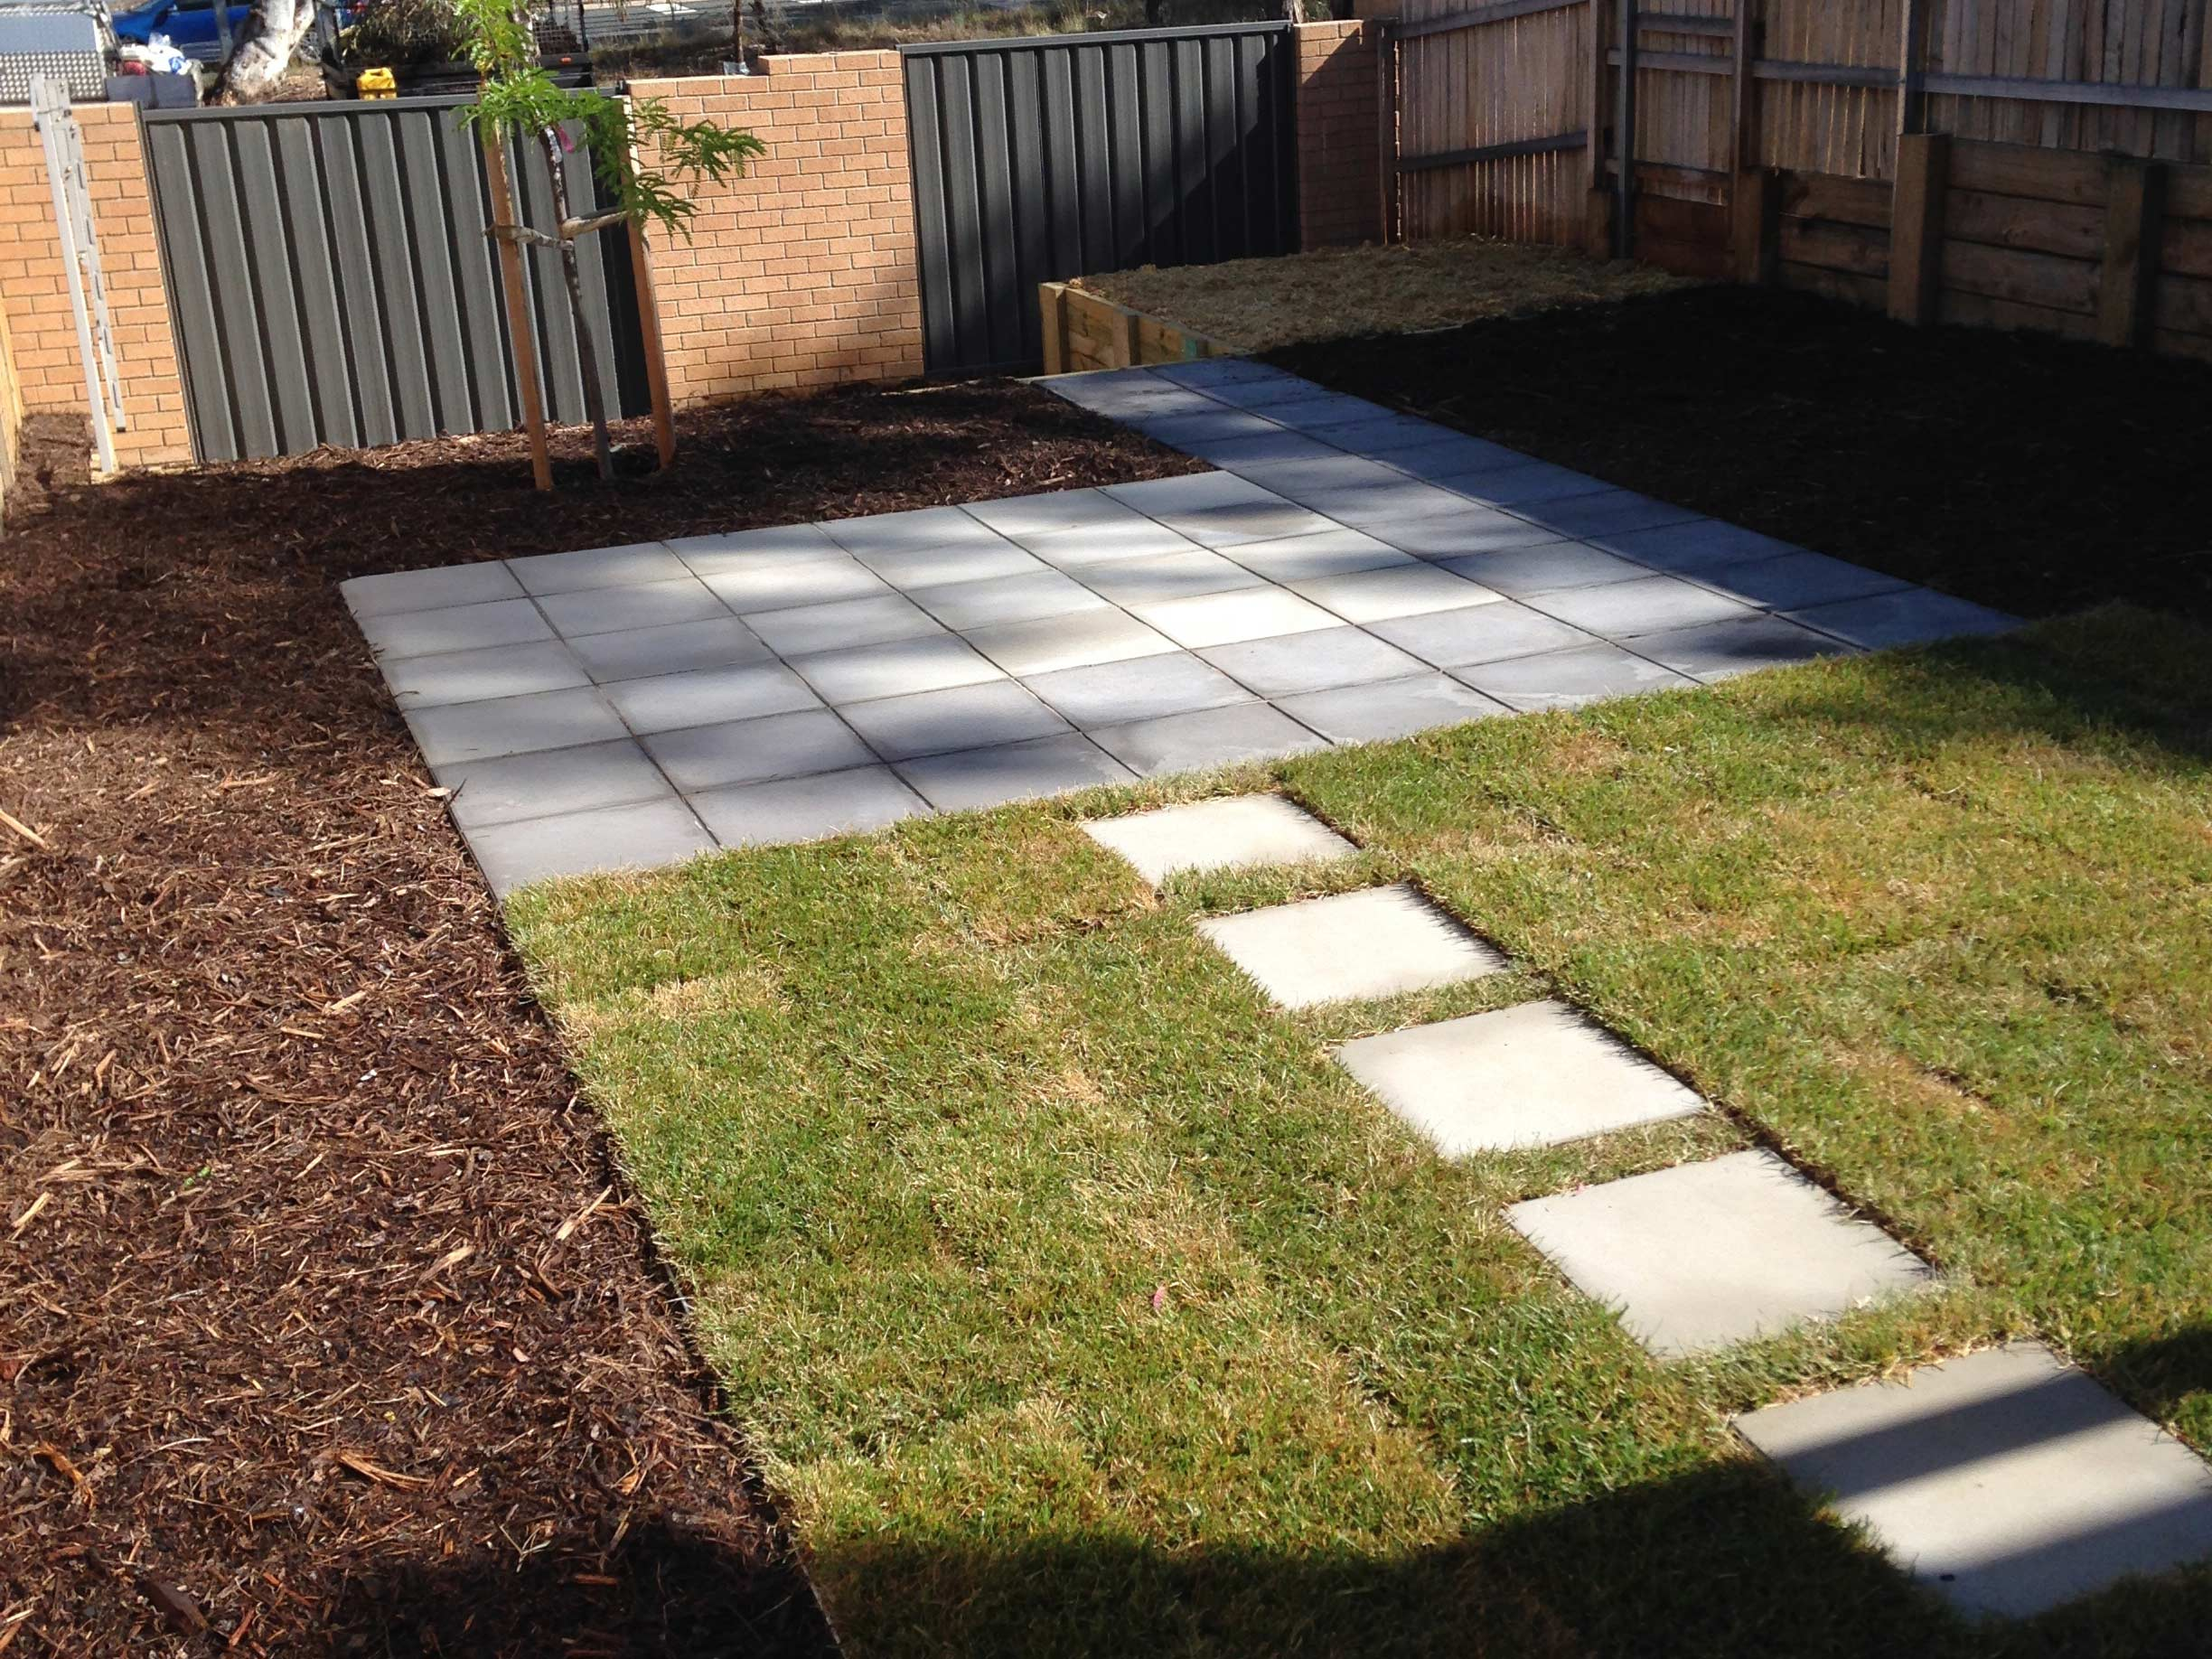 Tay Street, ACT. Paving, Turfing, Gardening and Retaining Wall 3